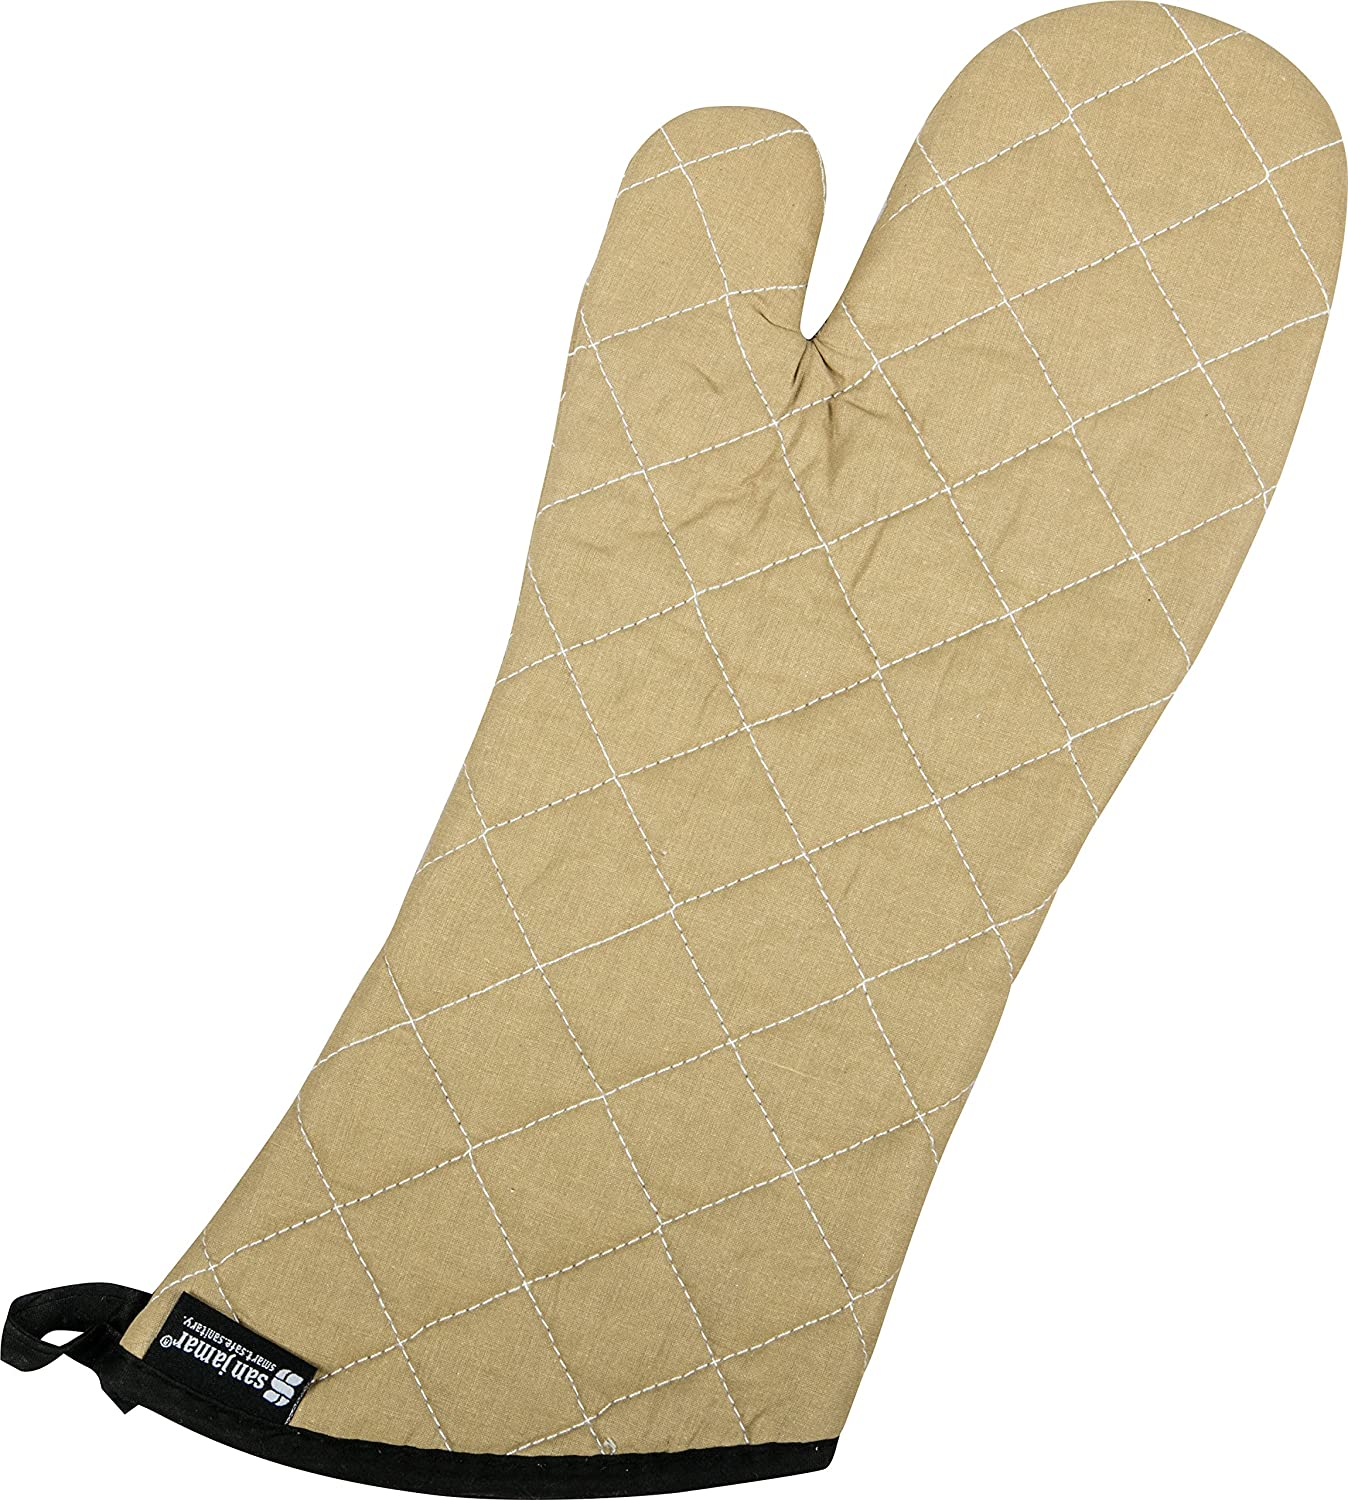 "San Jamar 811TG17 BesTan Temperature Protection Oven Mitt, 17"" Length, Tan"